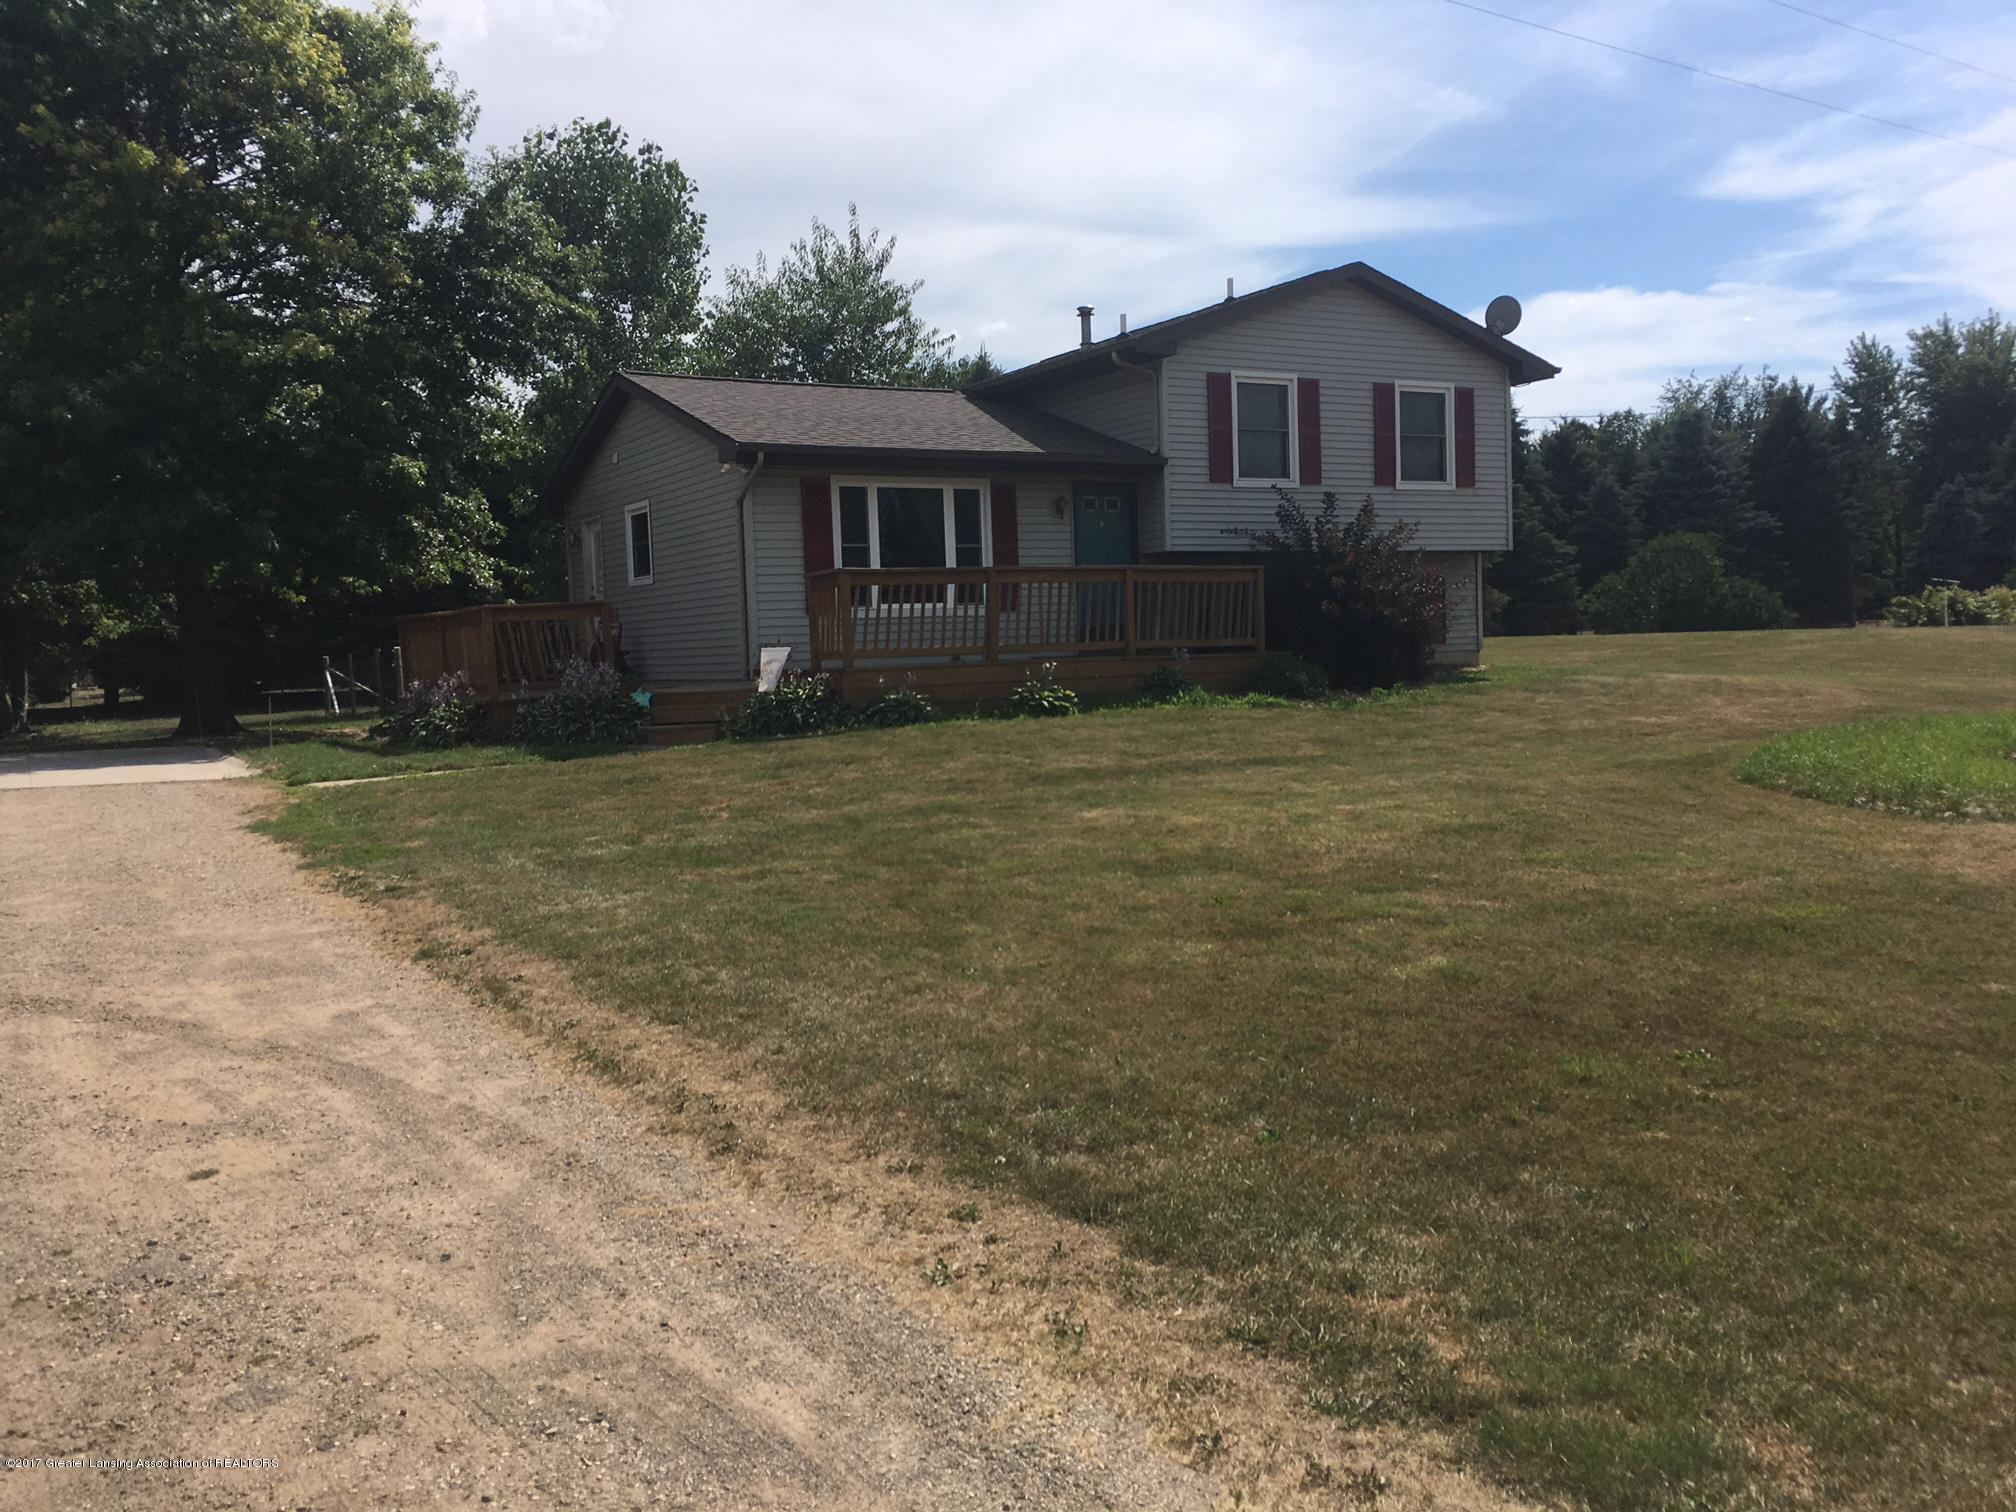 6070 E Price Rd - 1 6070 front - 1